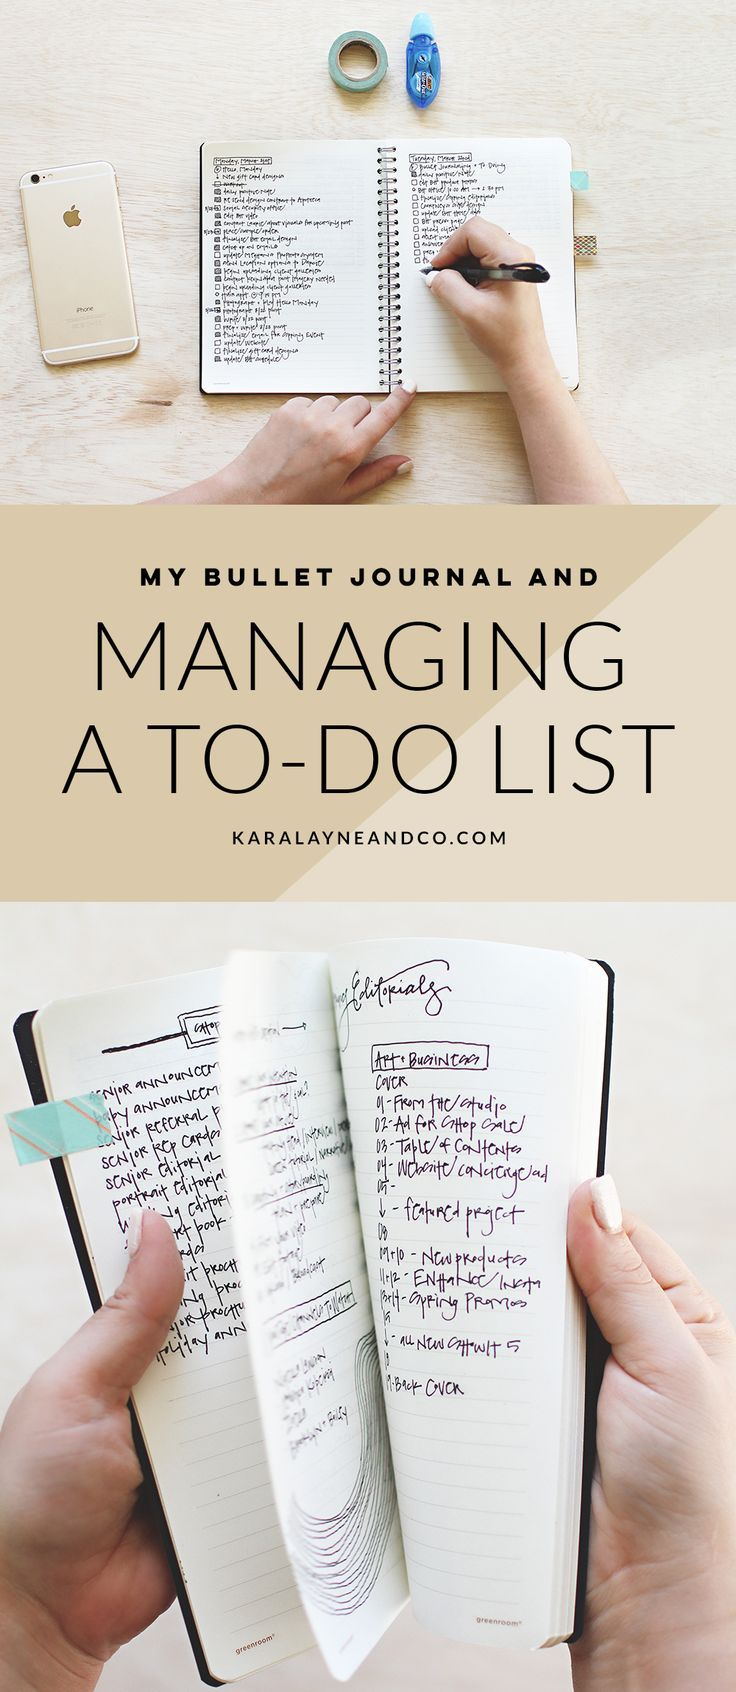 My bullet journal and managing a to-do list | #Organization #BulletJournal